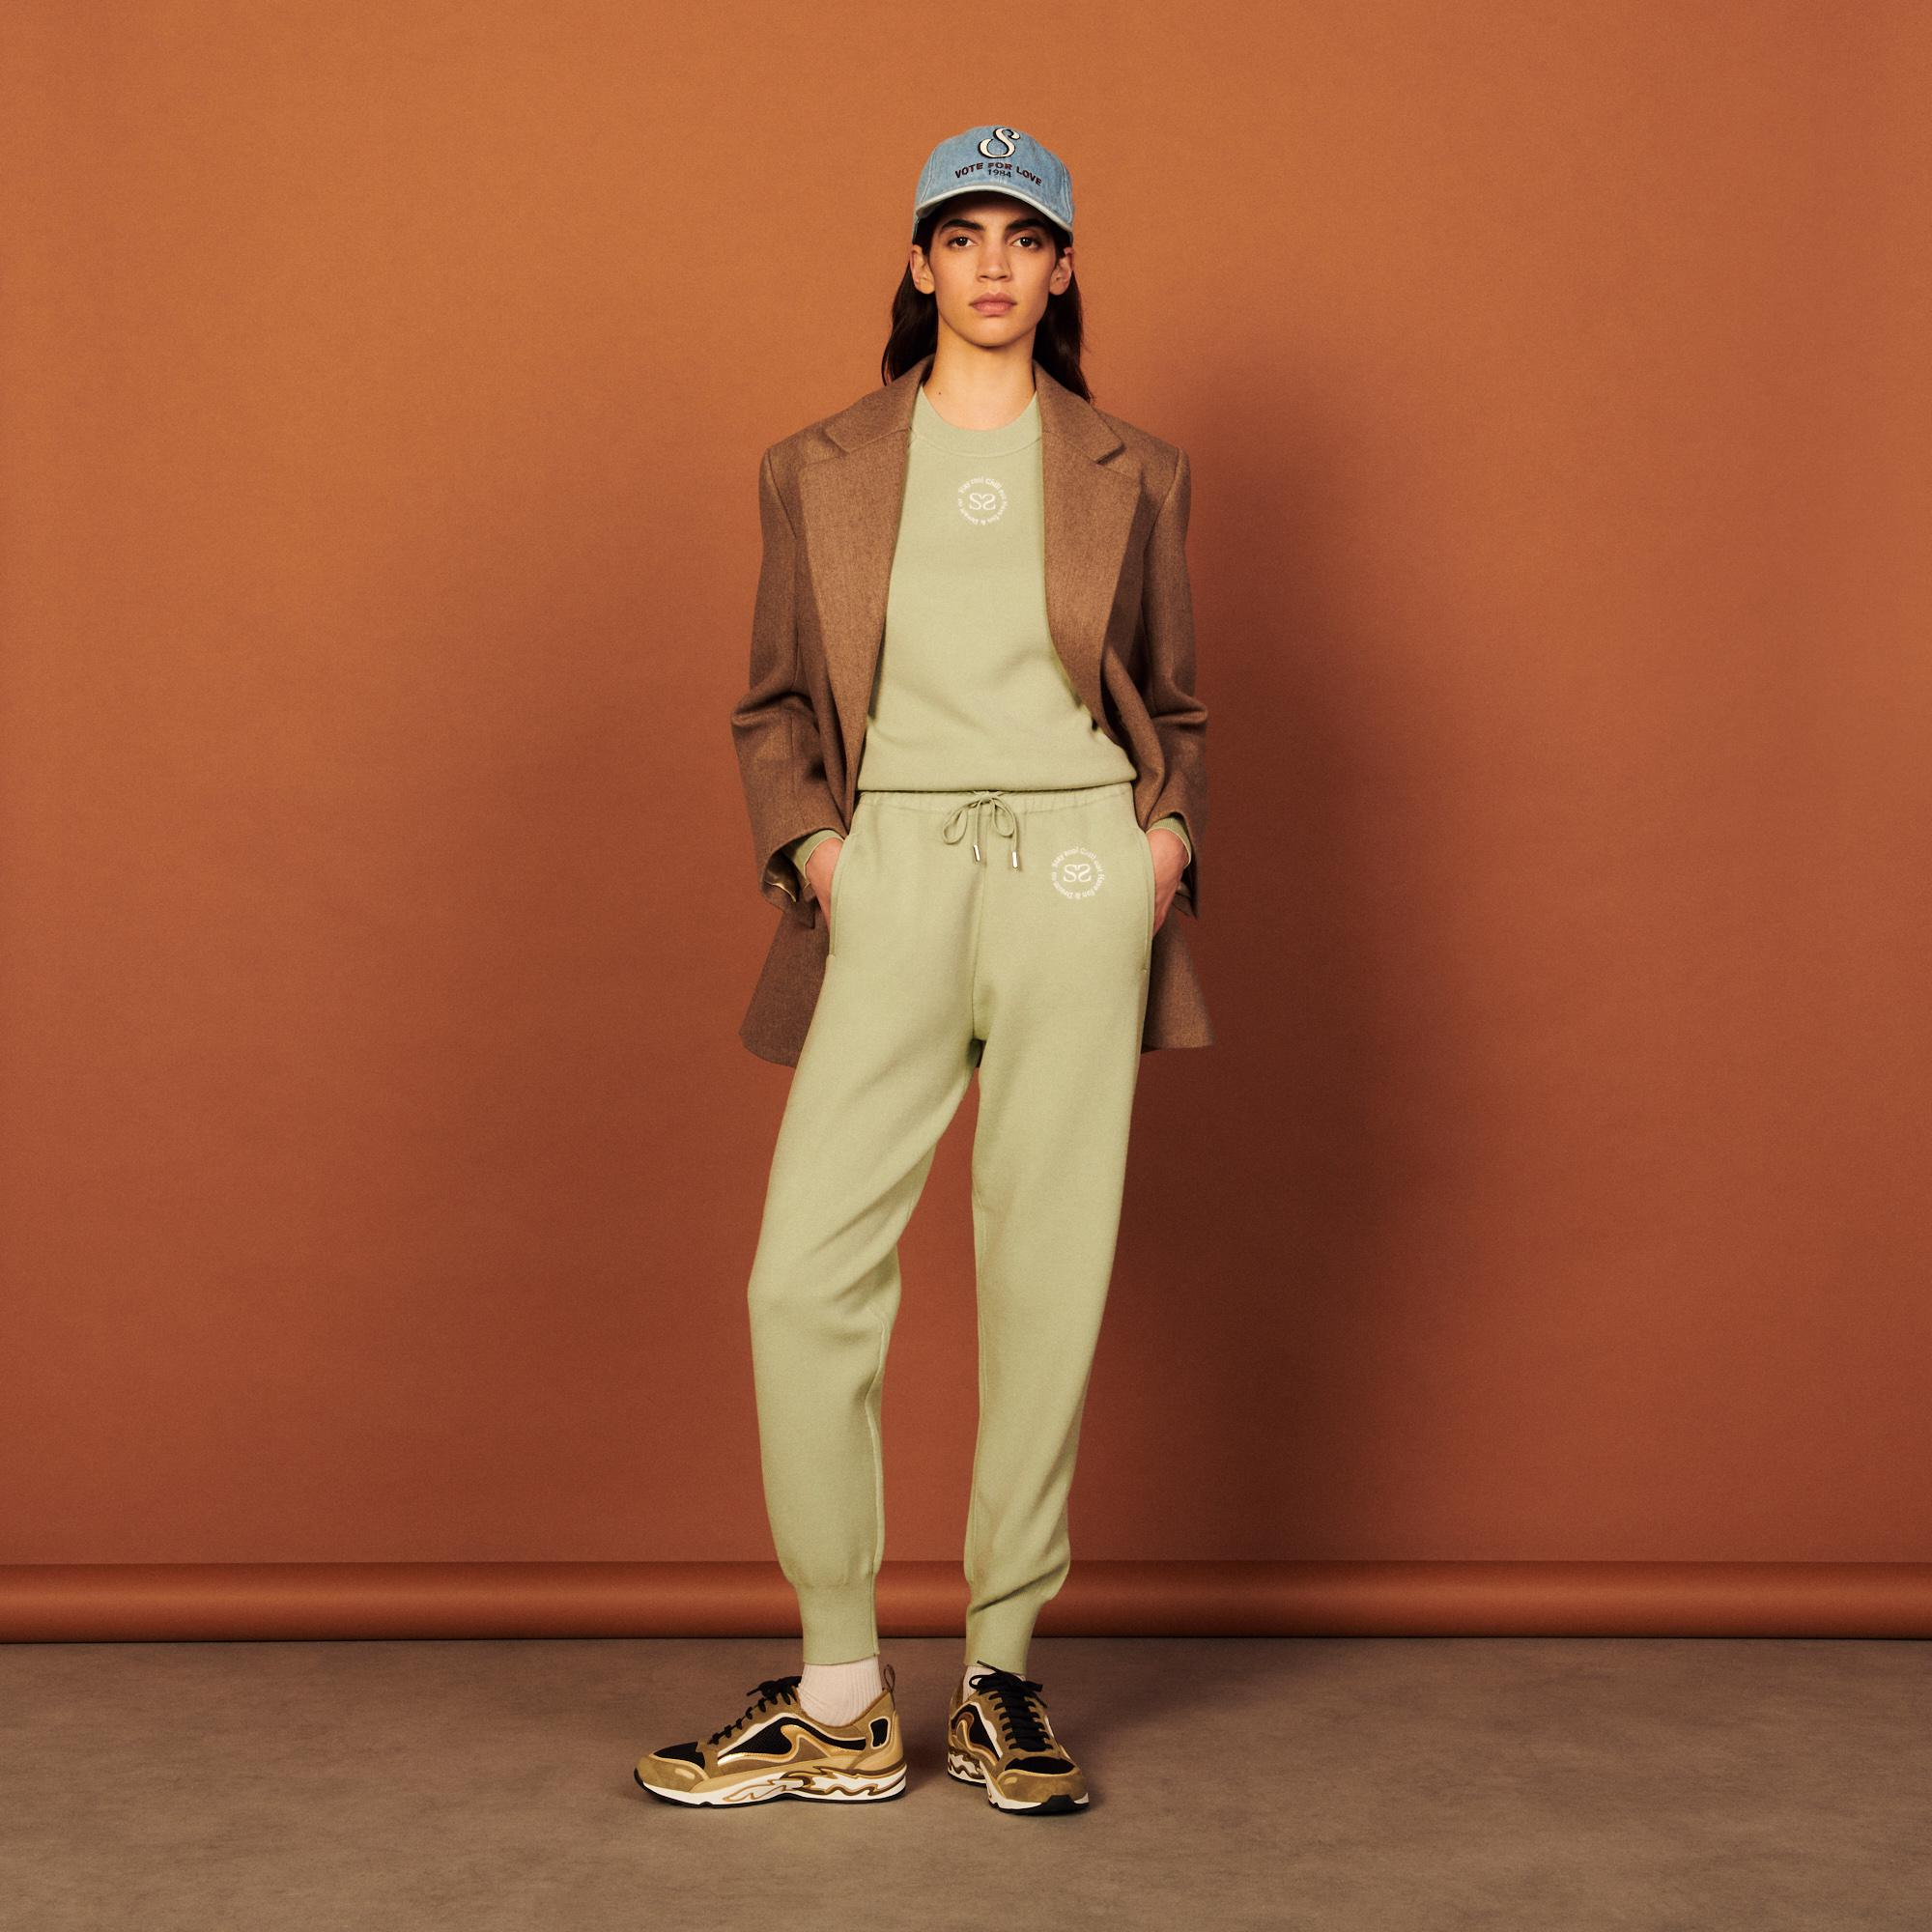 Knit jogging bottoms with embroidery